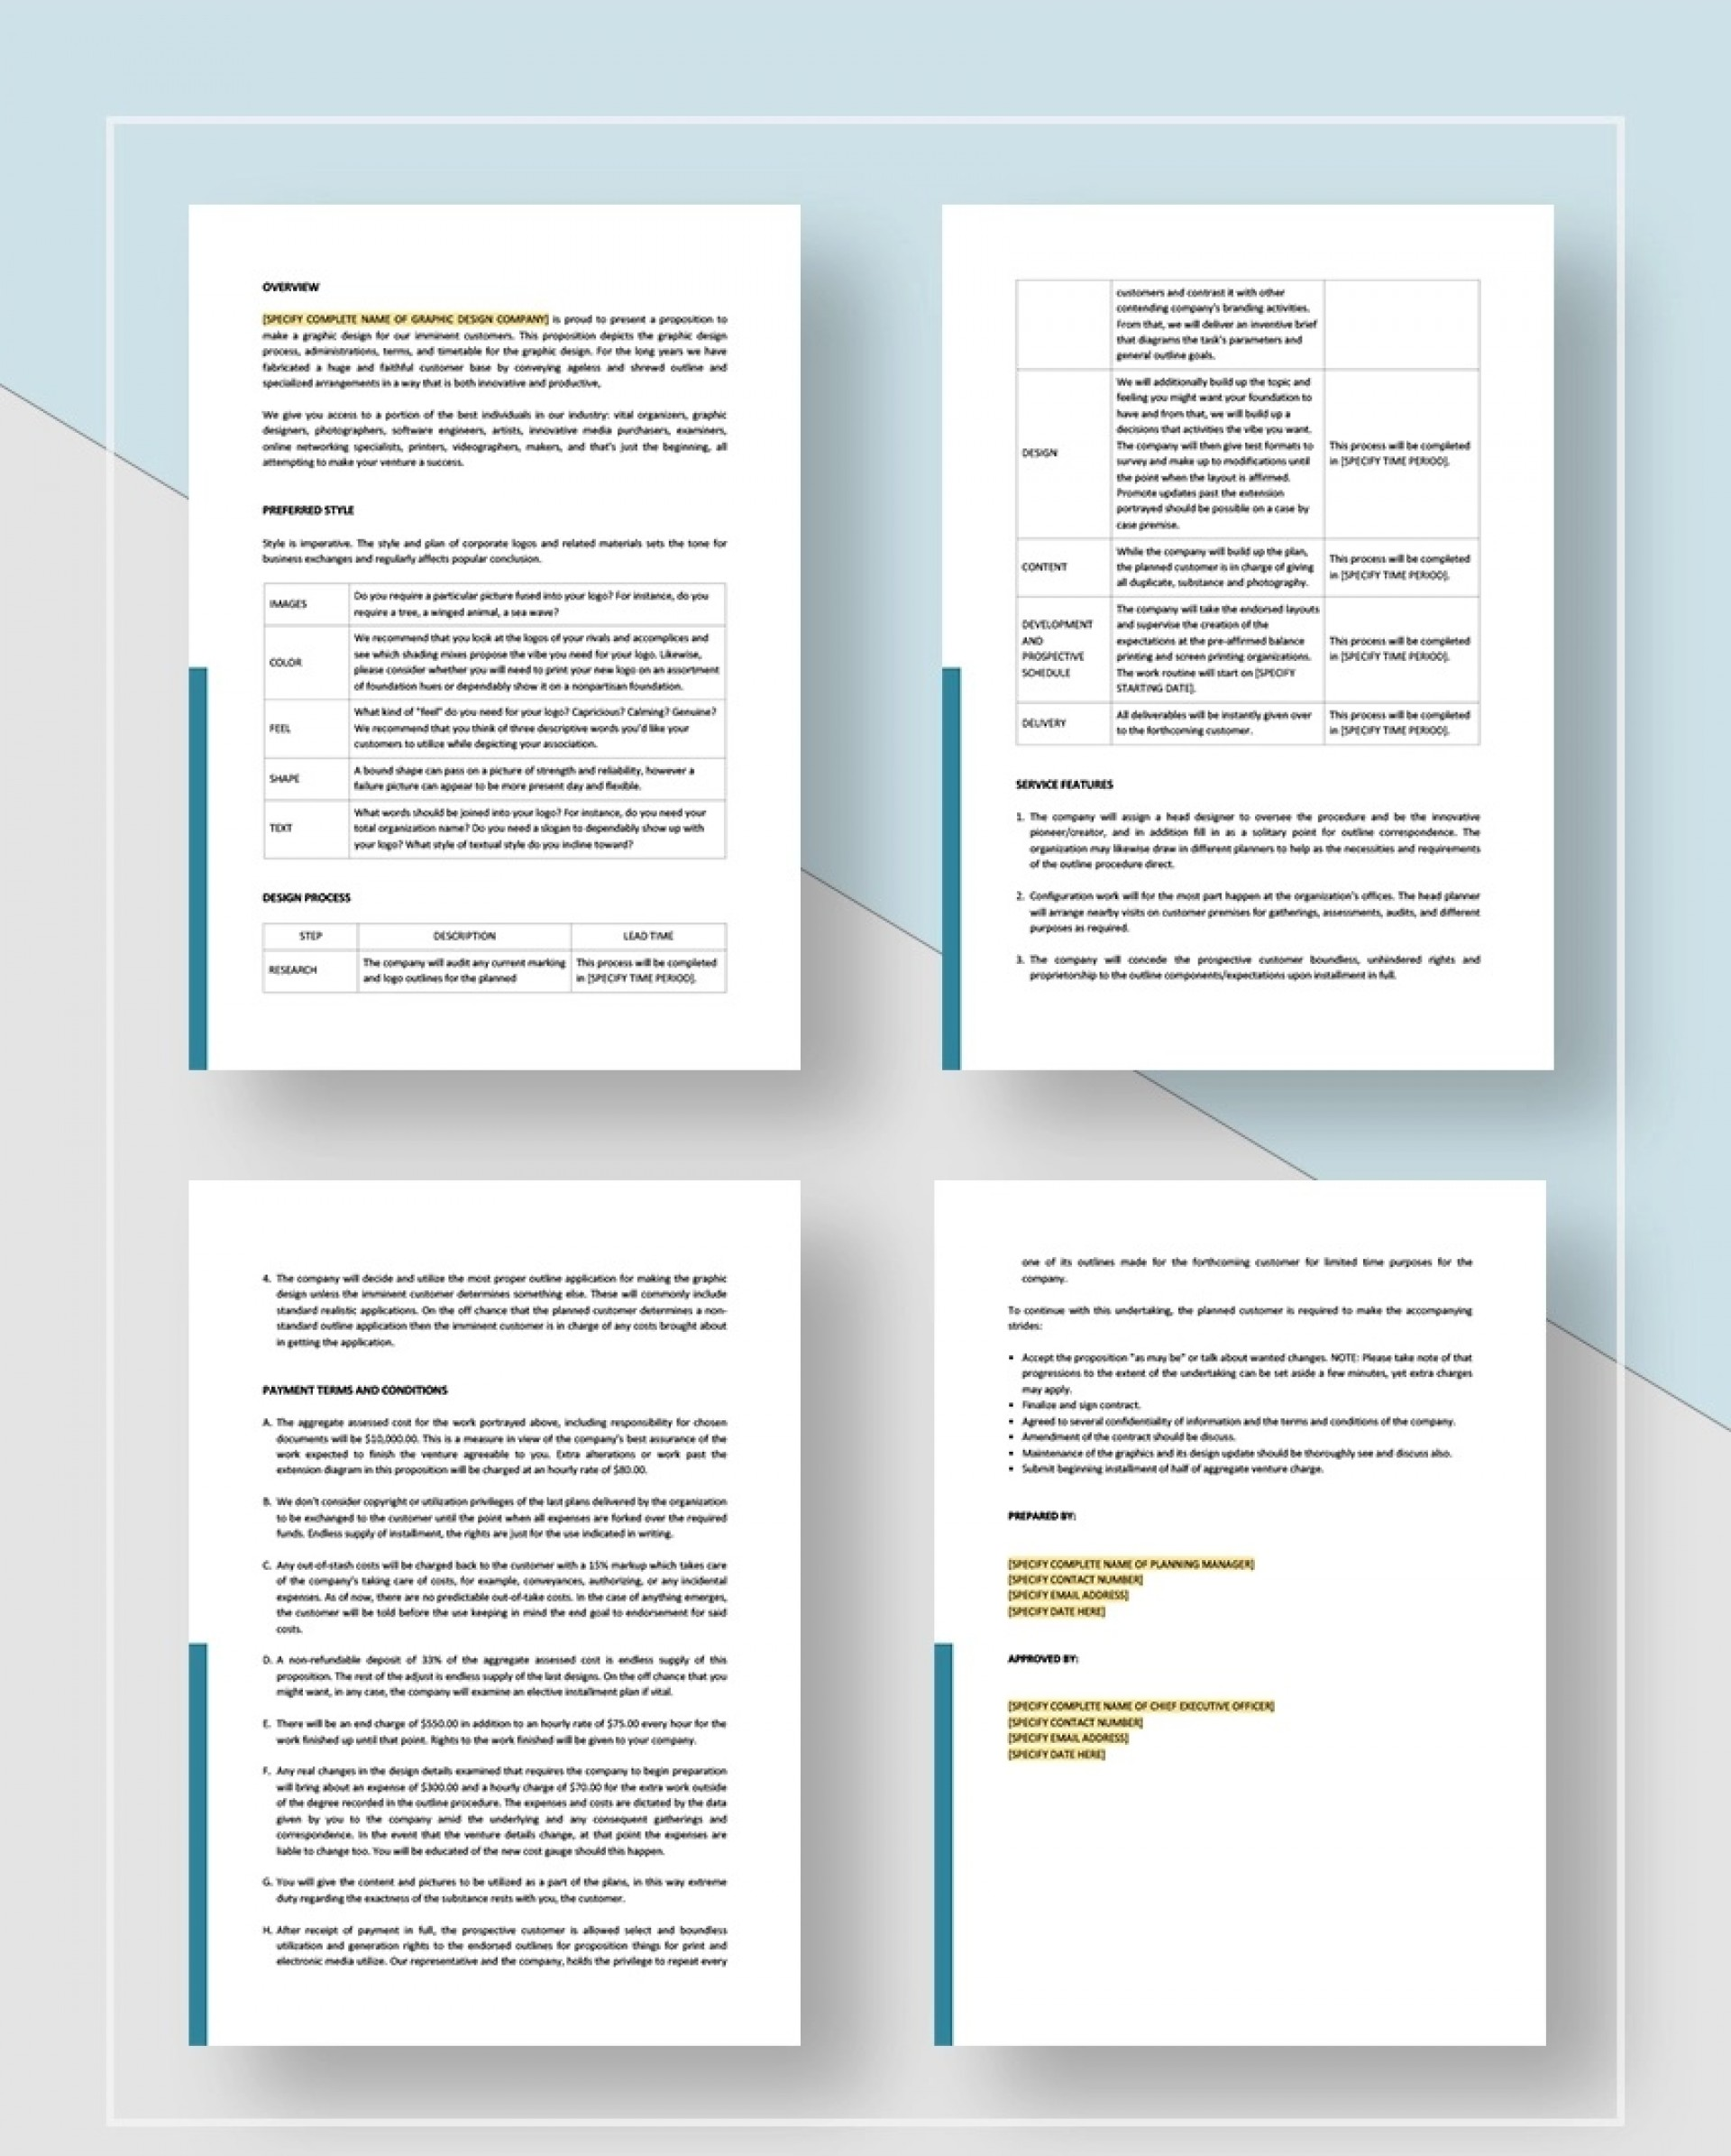 Graphic Design Proposal Template Sample Complete Jpg  Pdf Doc Word1920